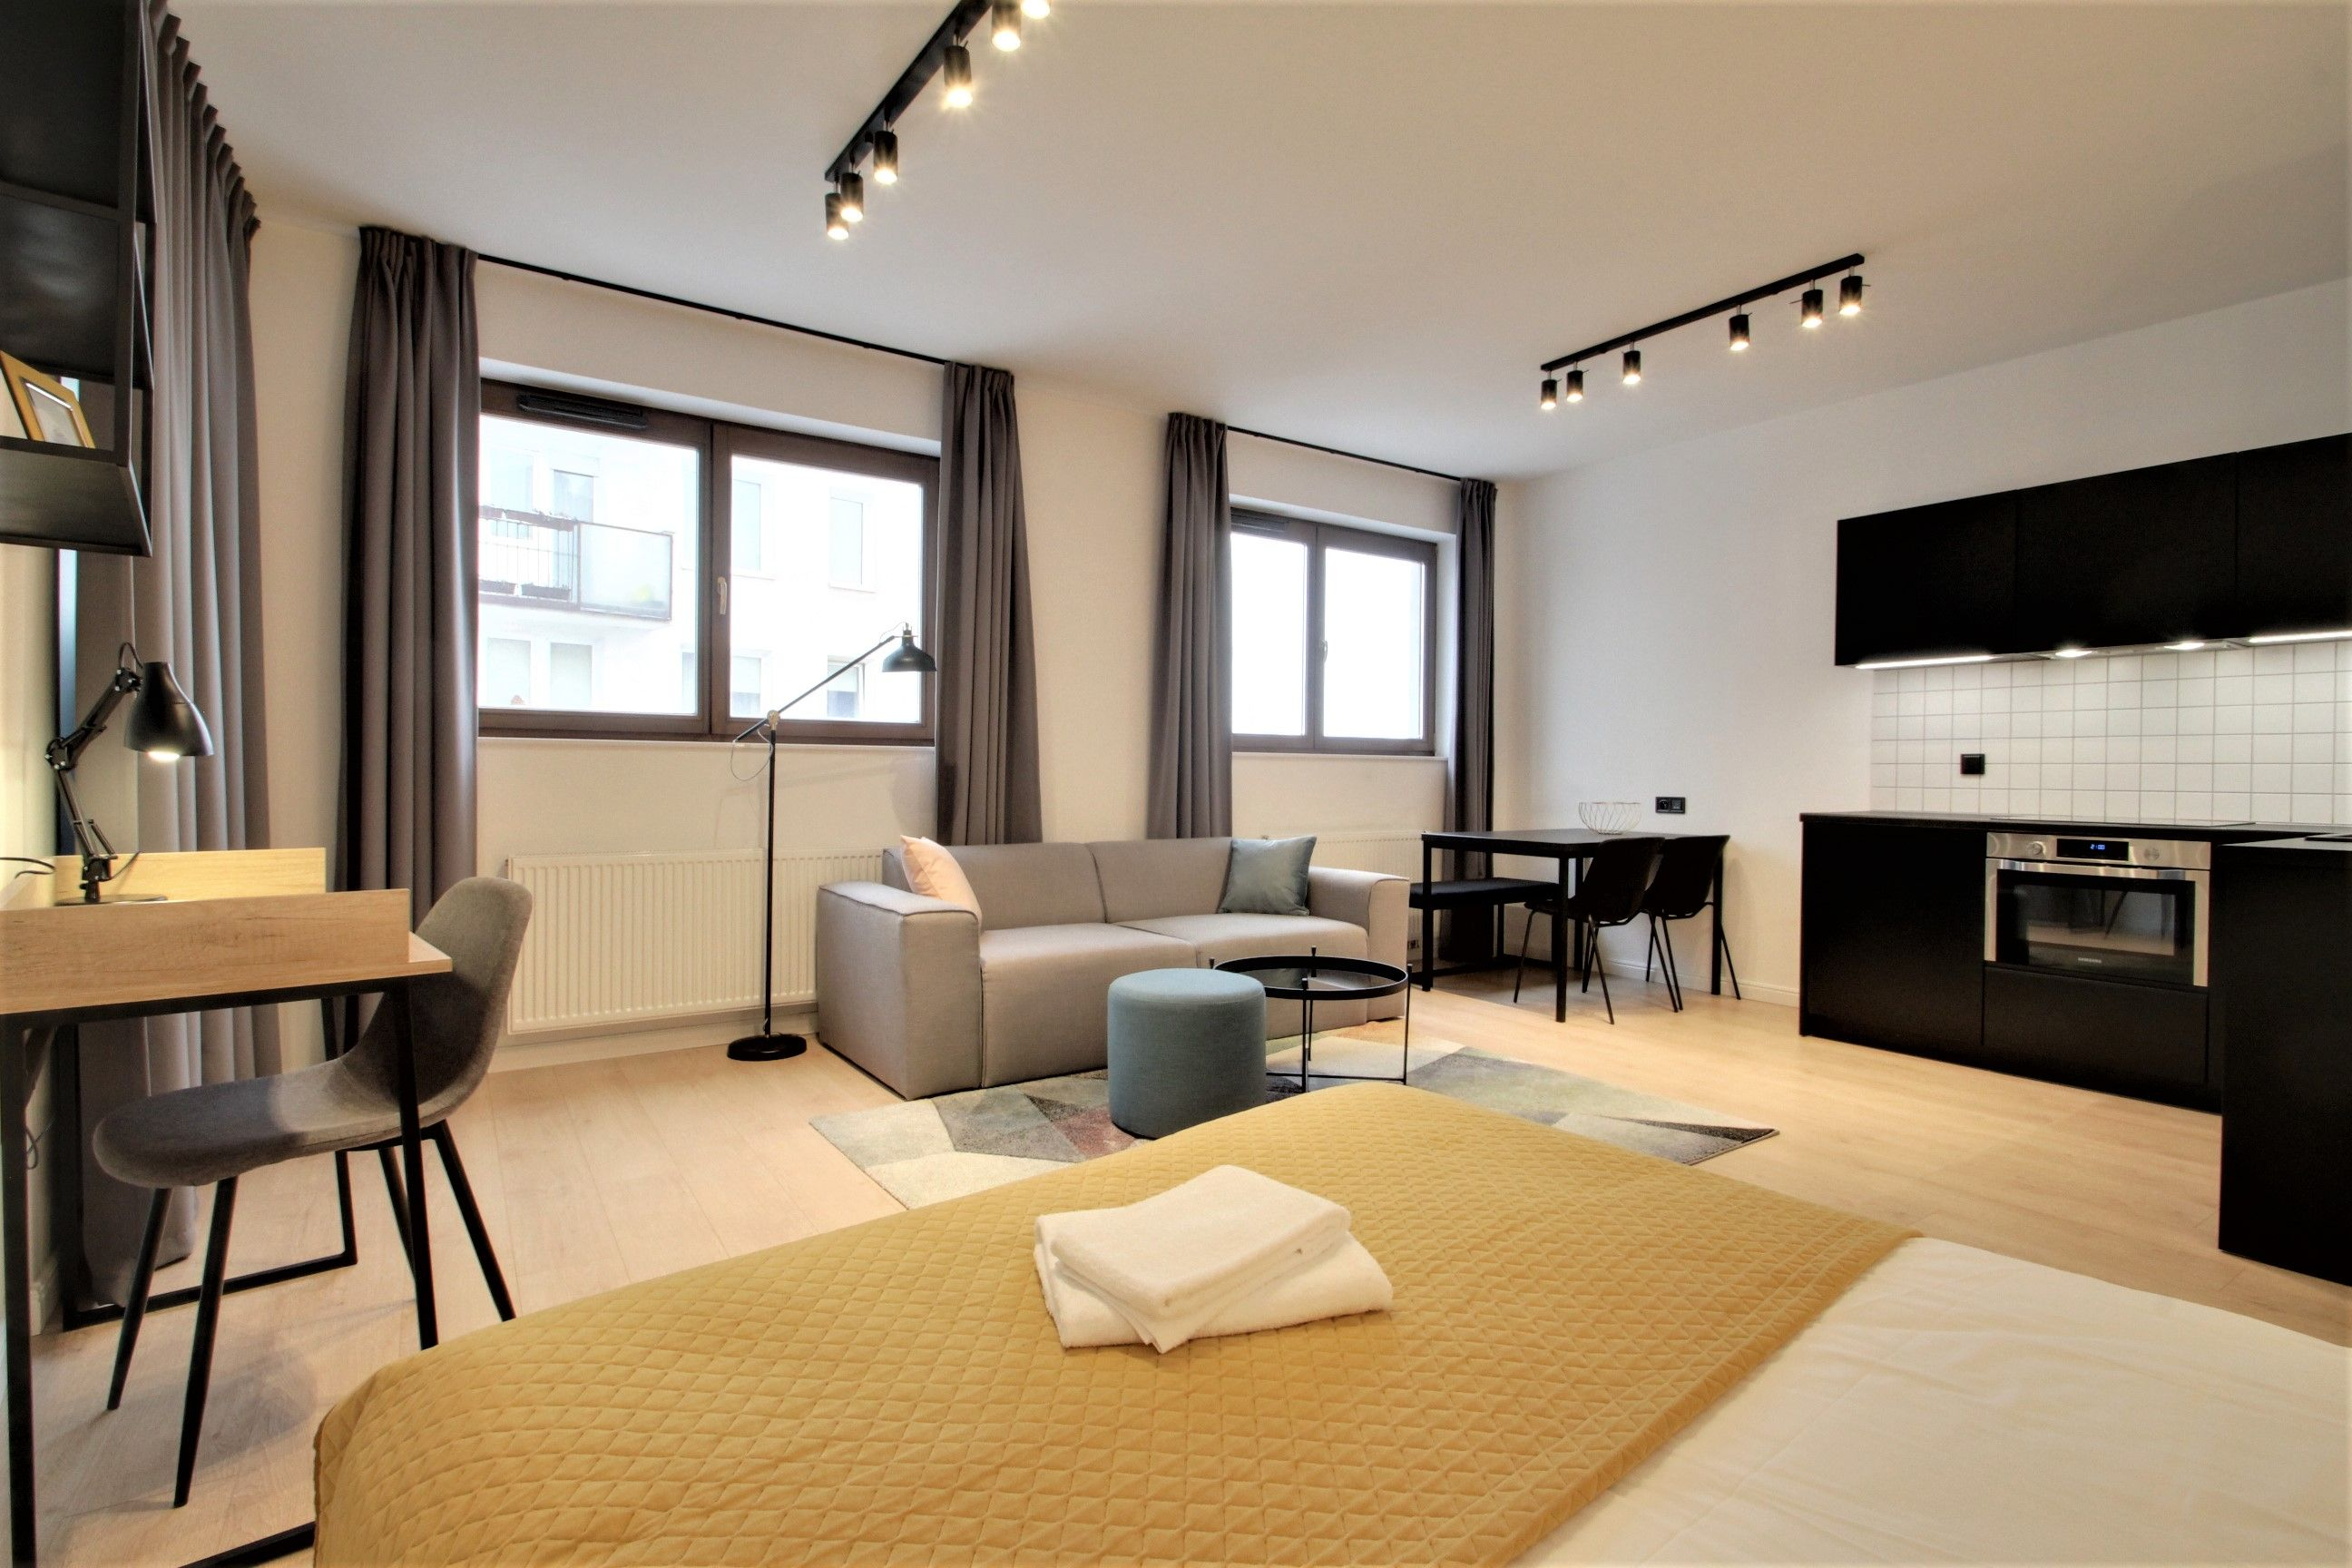 Studio - Large apartment to rent in Warsaw UPR-A-011-2